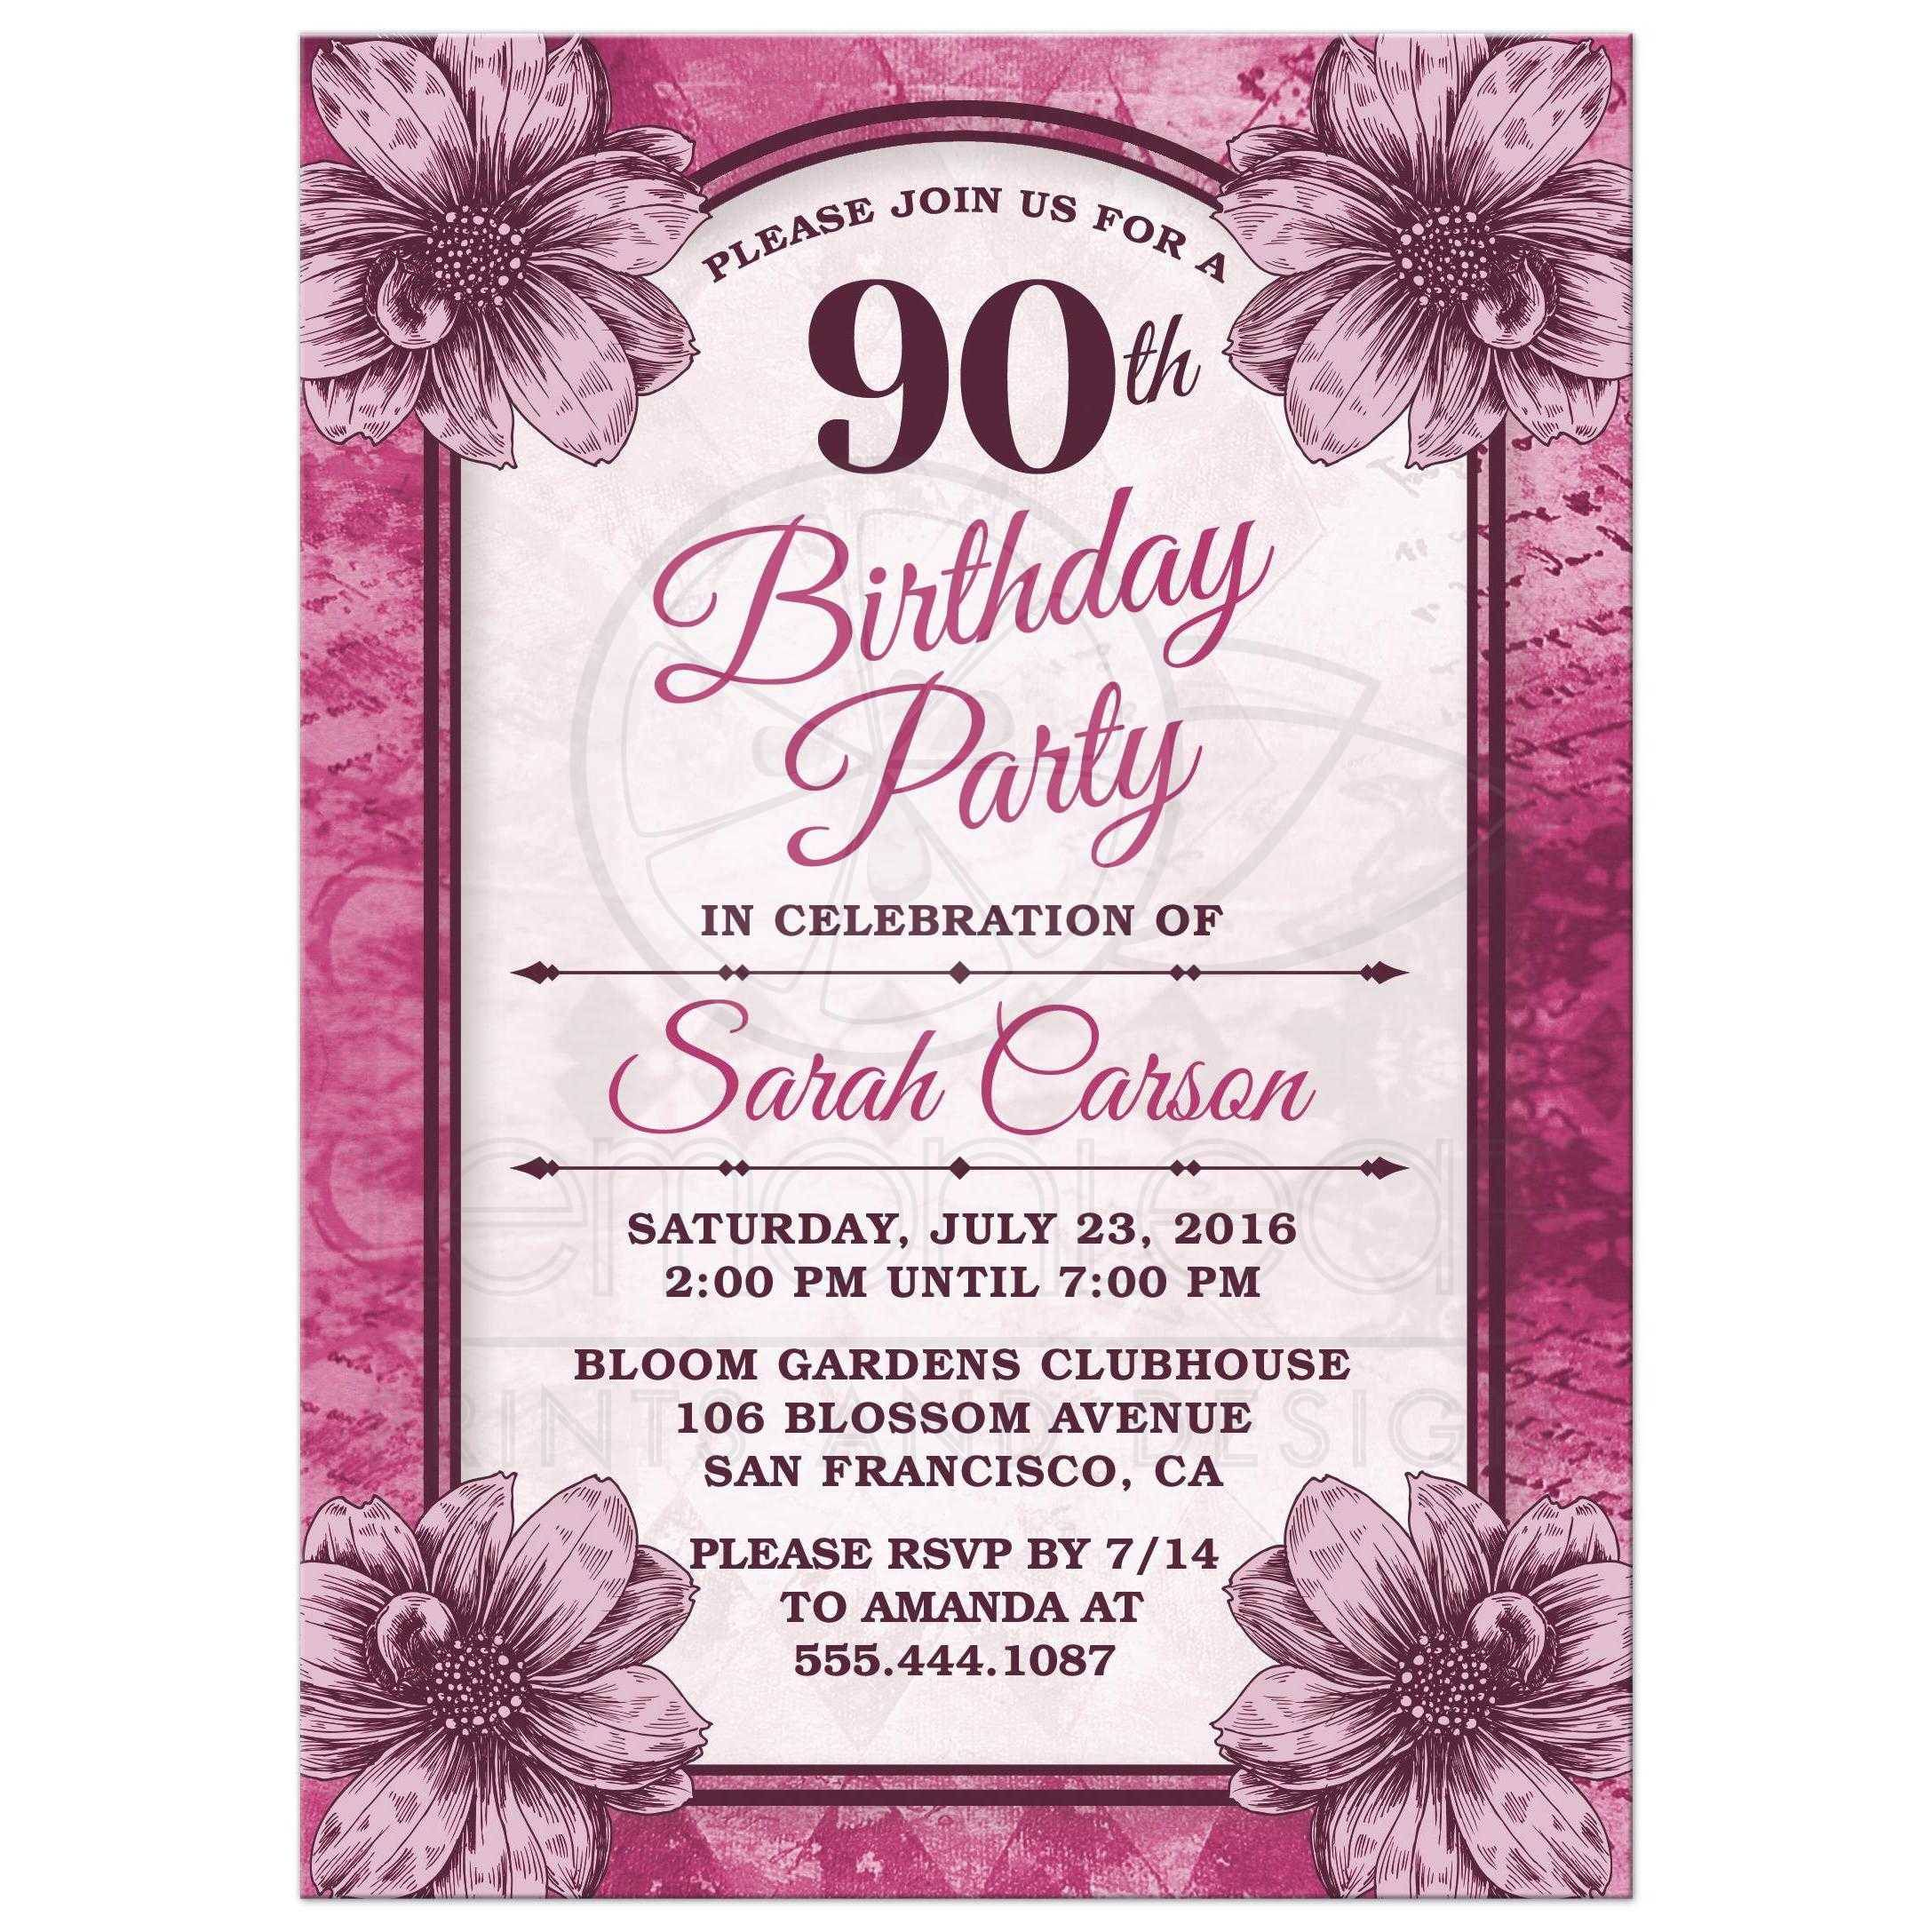 90th Birthday Party Invitations Templates Free  Birthday Invitation Template Word